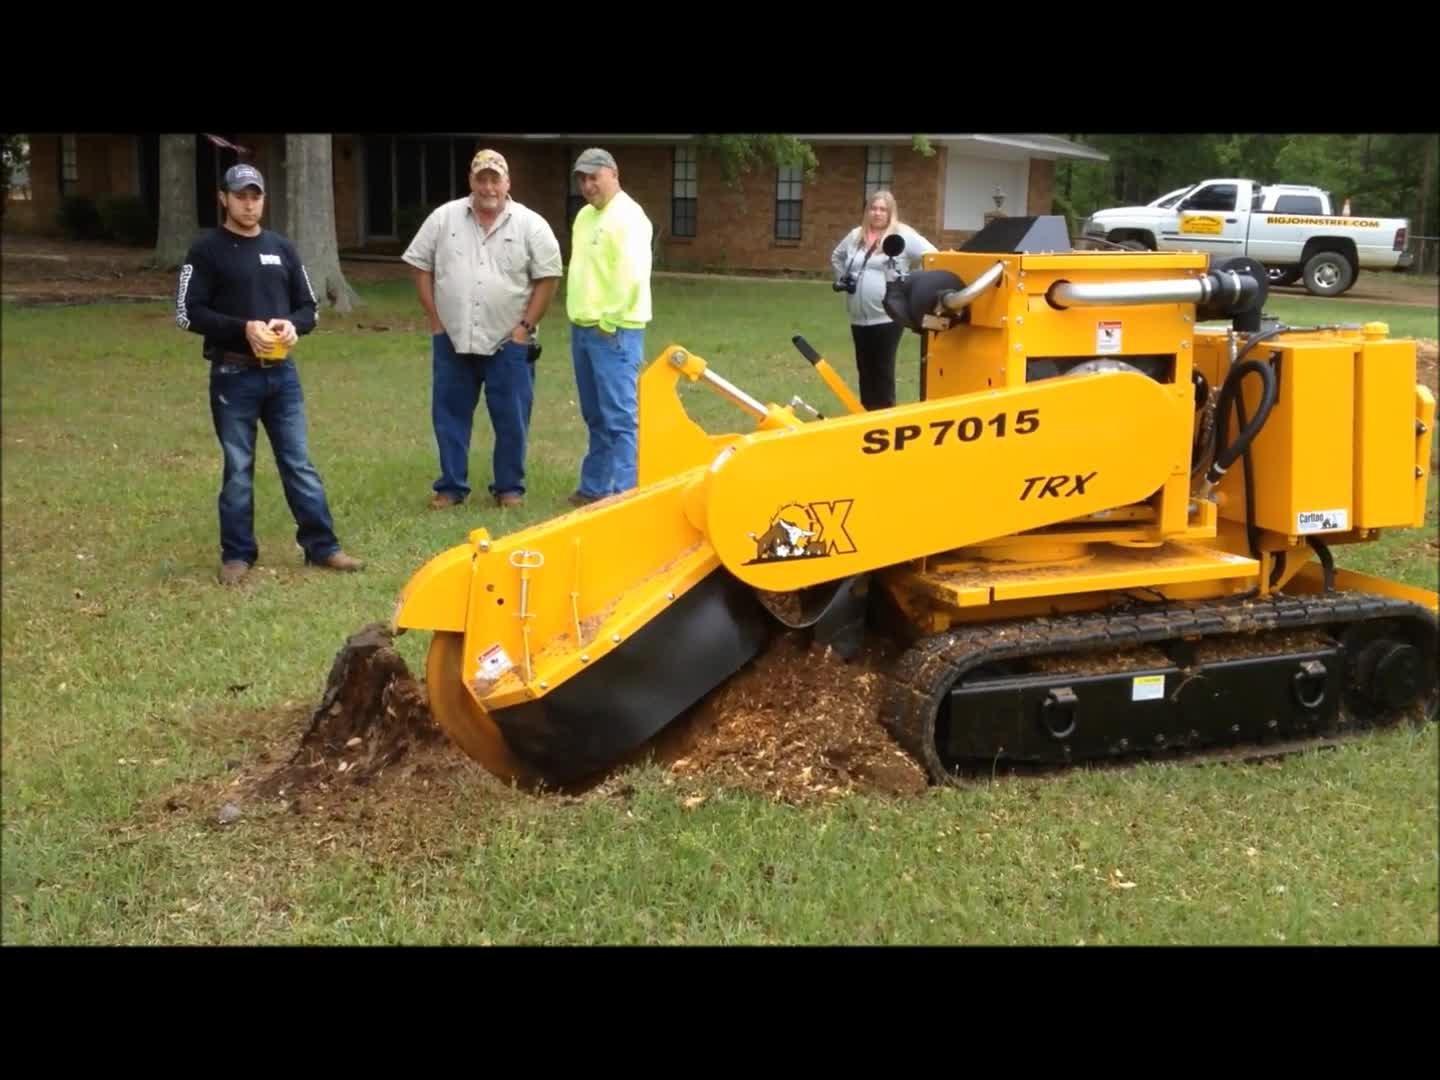 Bandit, Carlton, Green Teeth, Rayco, Stump Grinder, Stump Grinding, Stump Removal, Tree Service, Tree Work, Vermeer, stump grinder GIFs